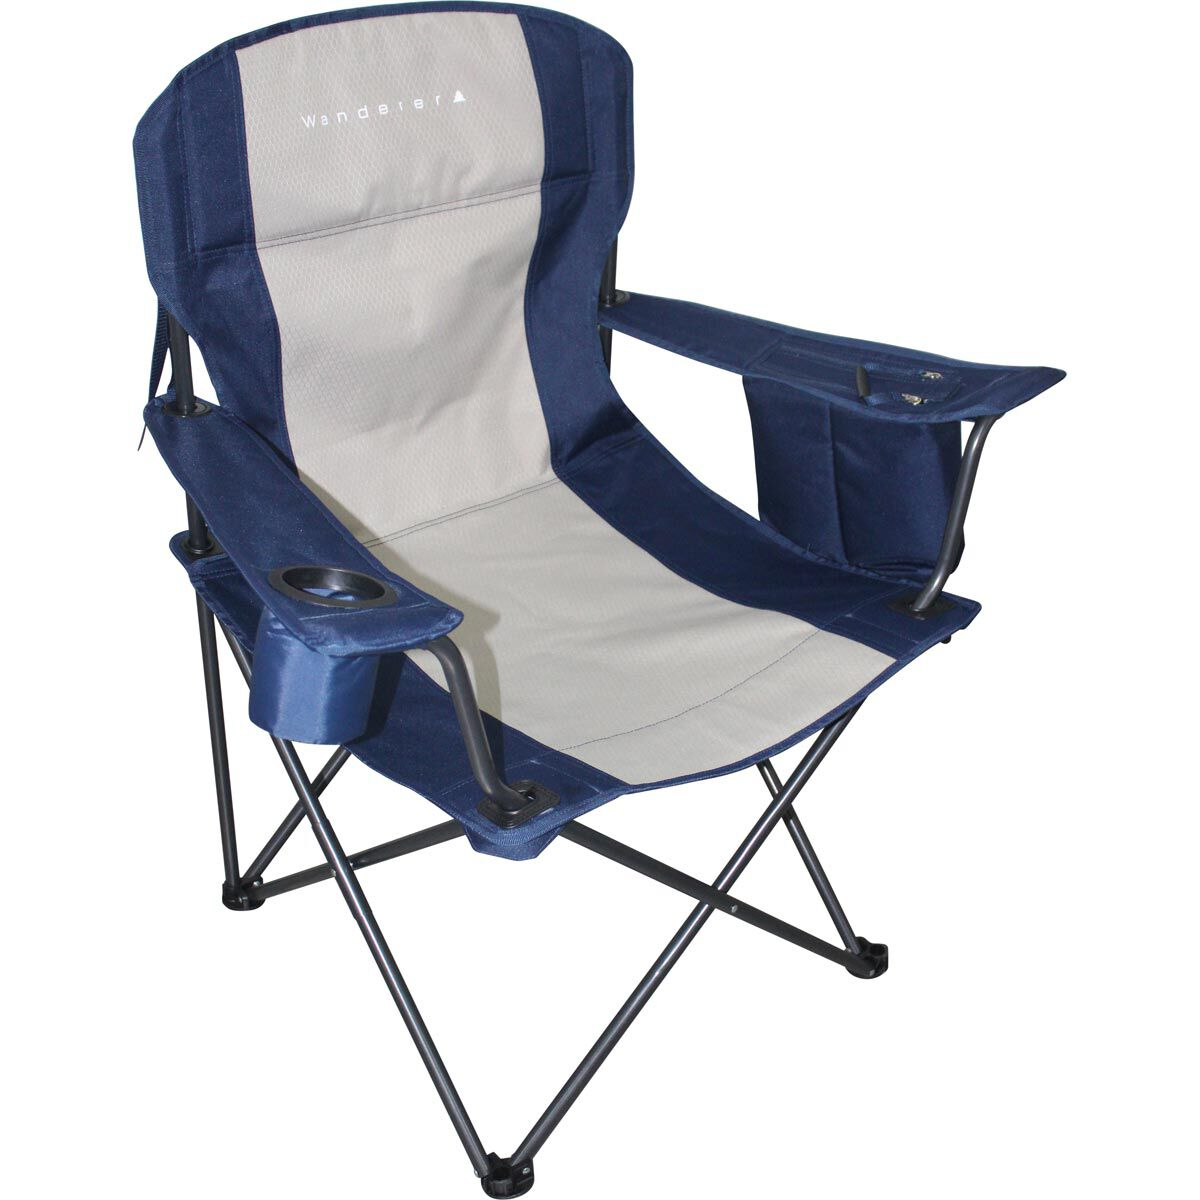 fishing chair spare parts high back chairs for dining room beach buy online bcf australia standard cooler arm hi res